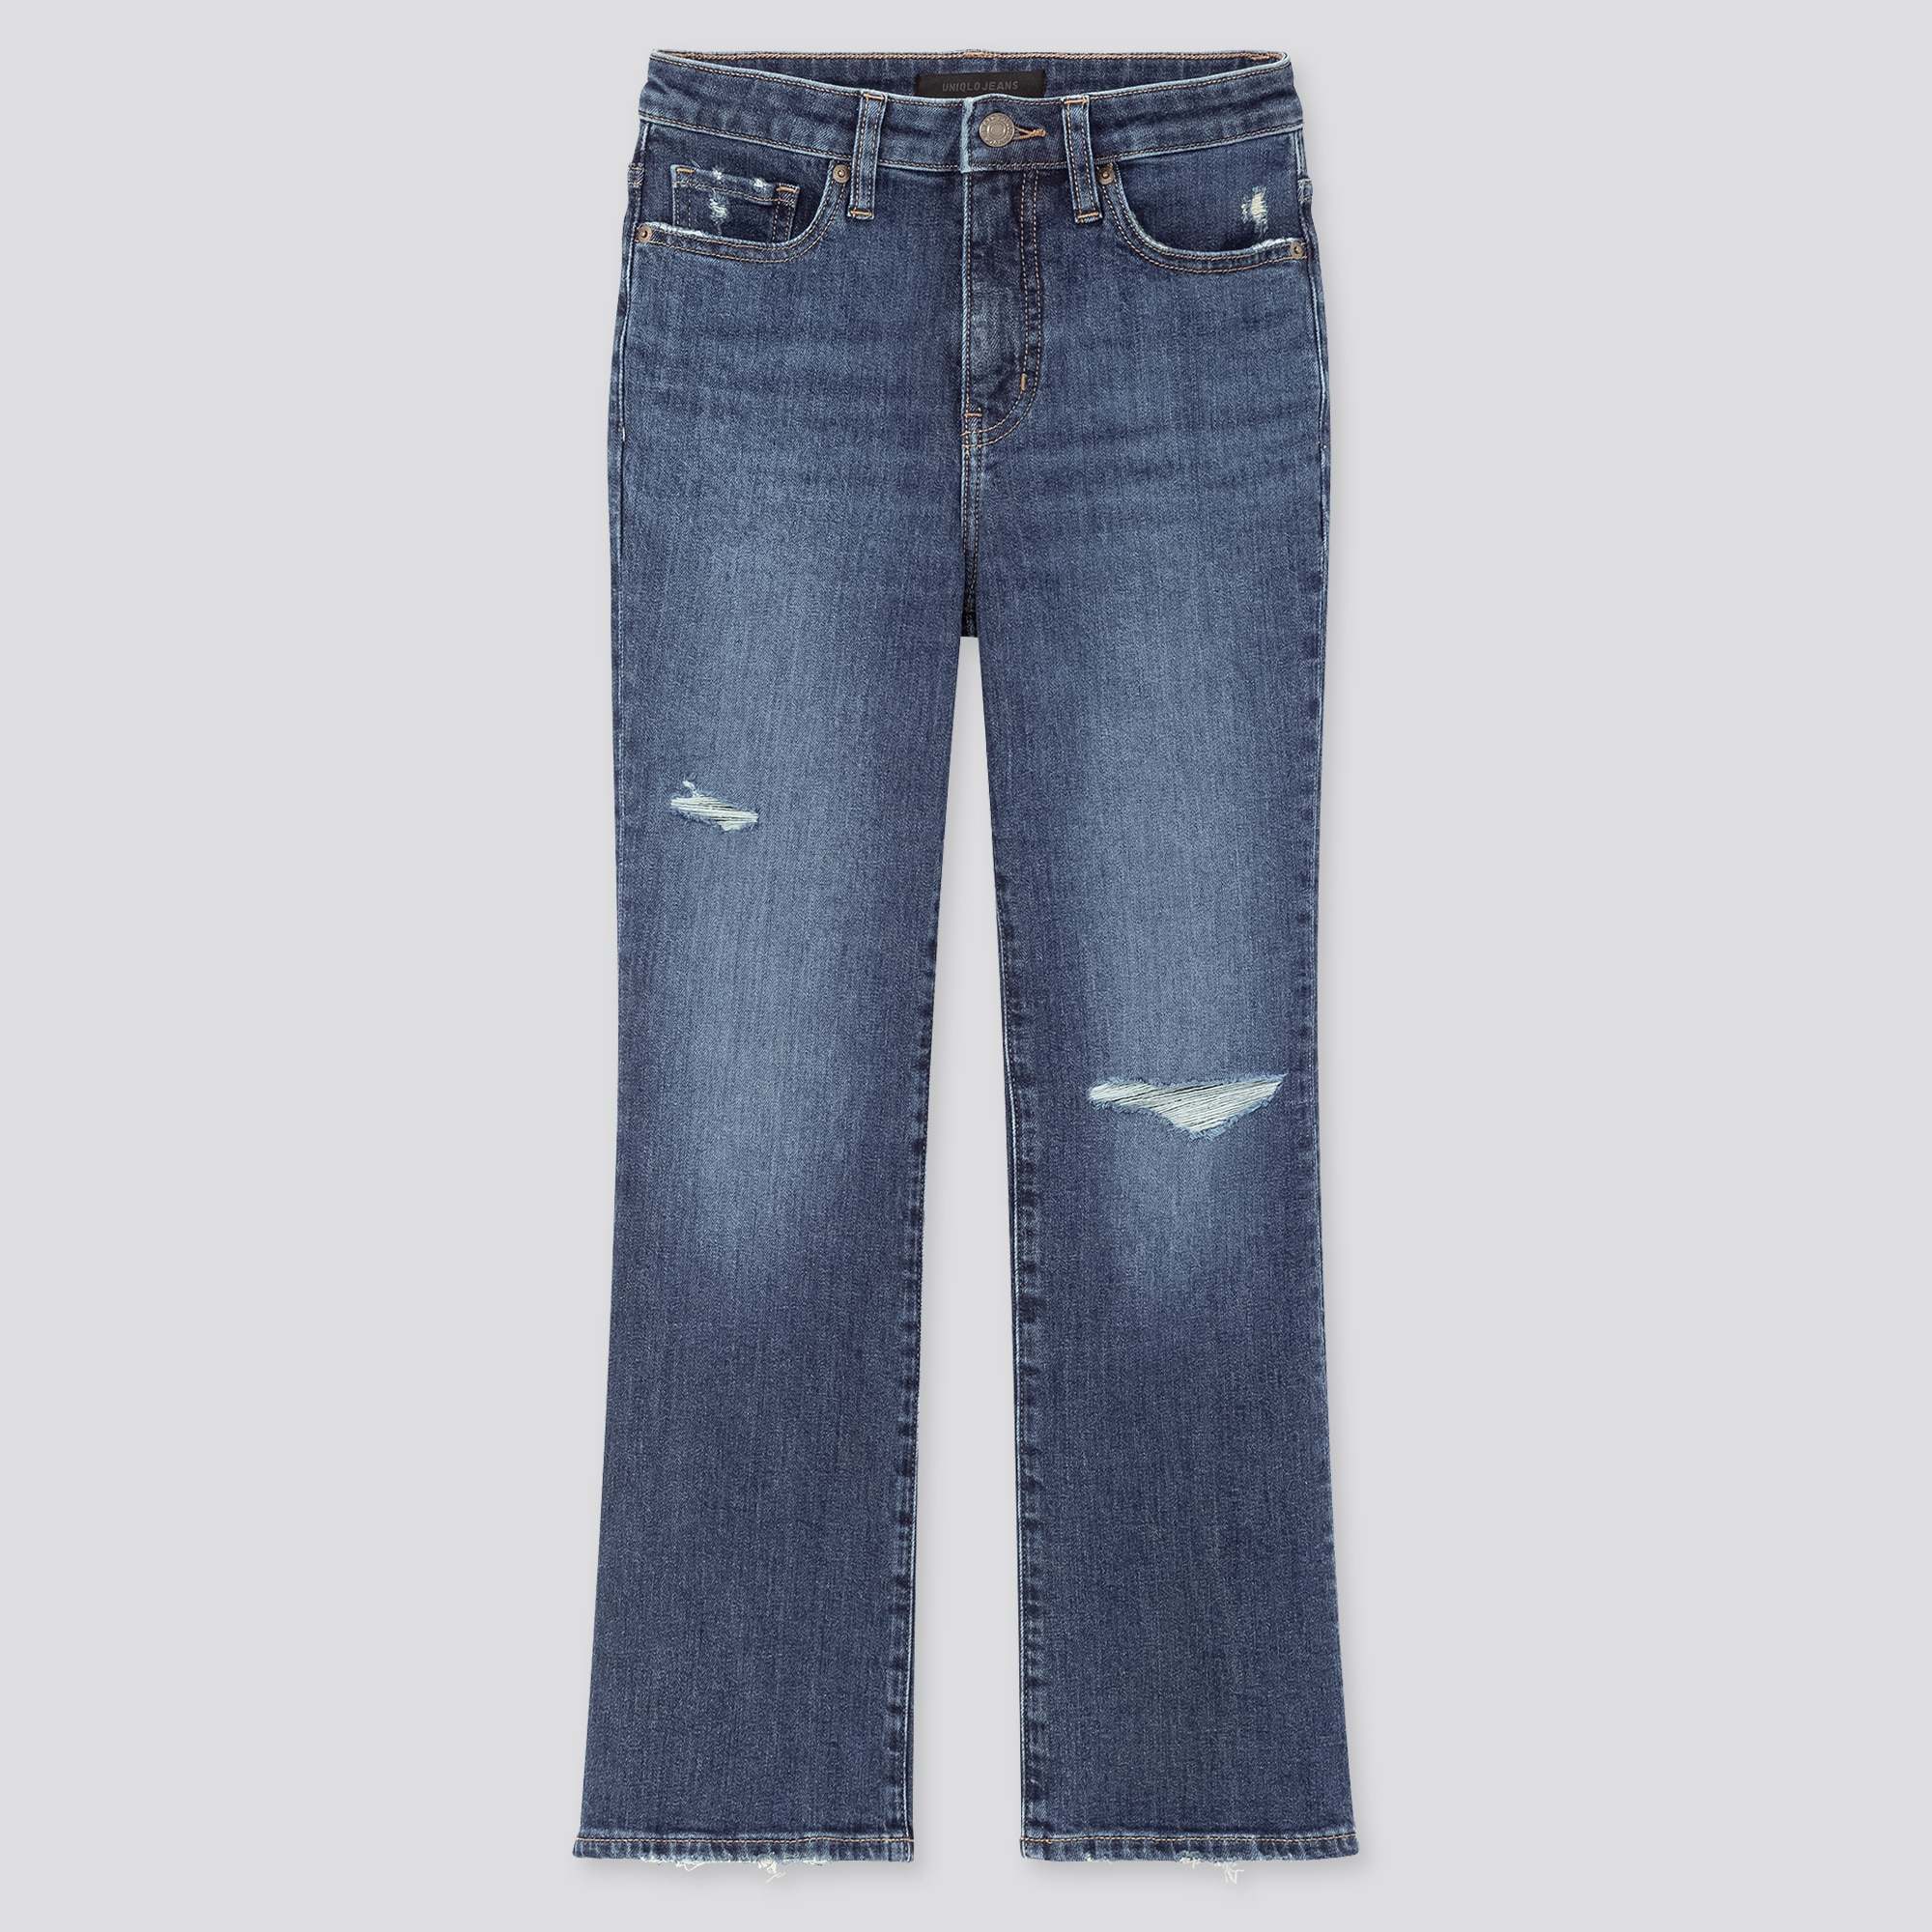 WOMEN HIGH-RISE SKINNY FLARE ANKLE JEANS